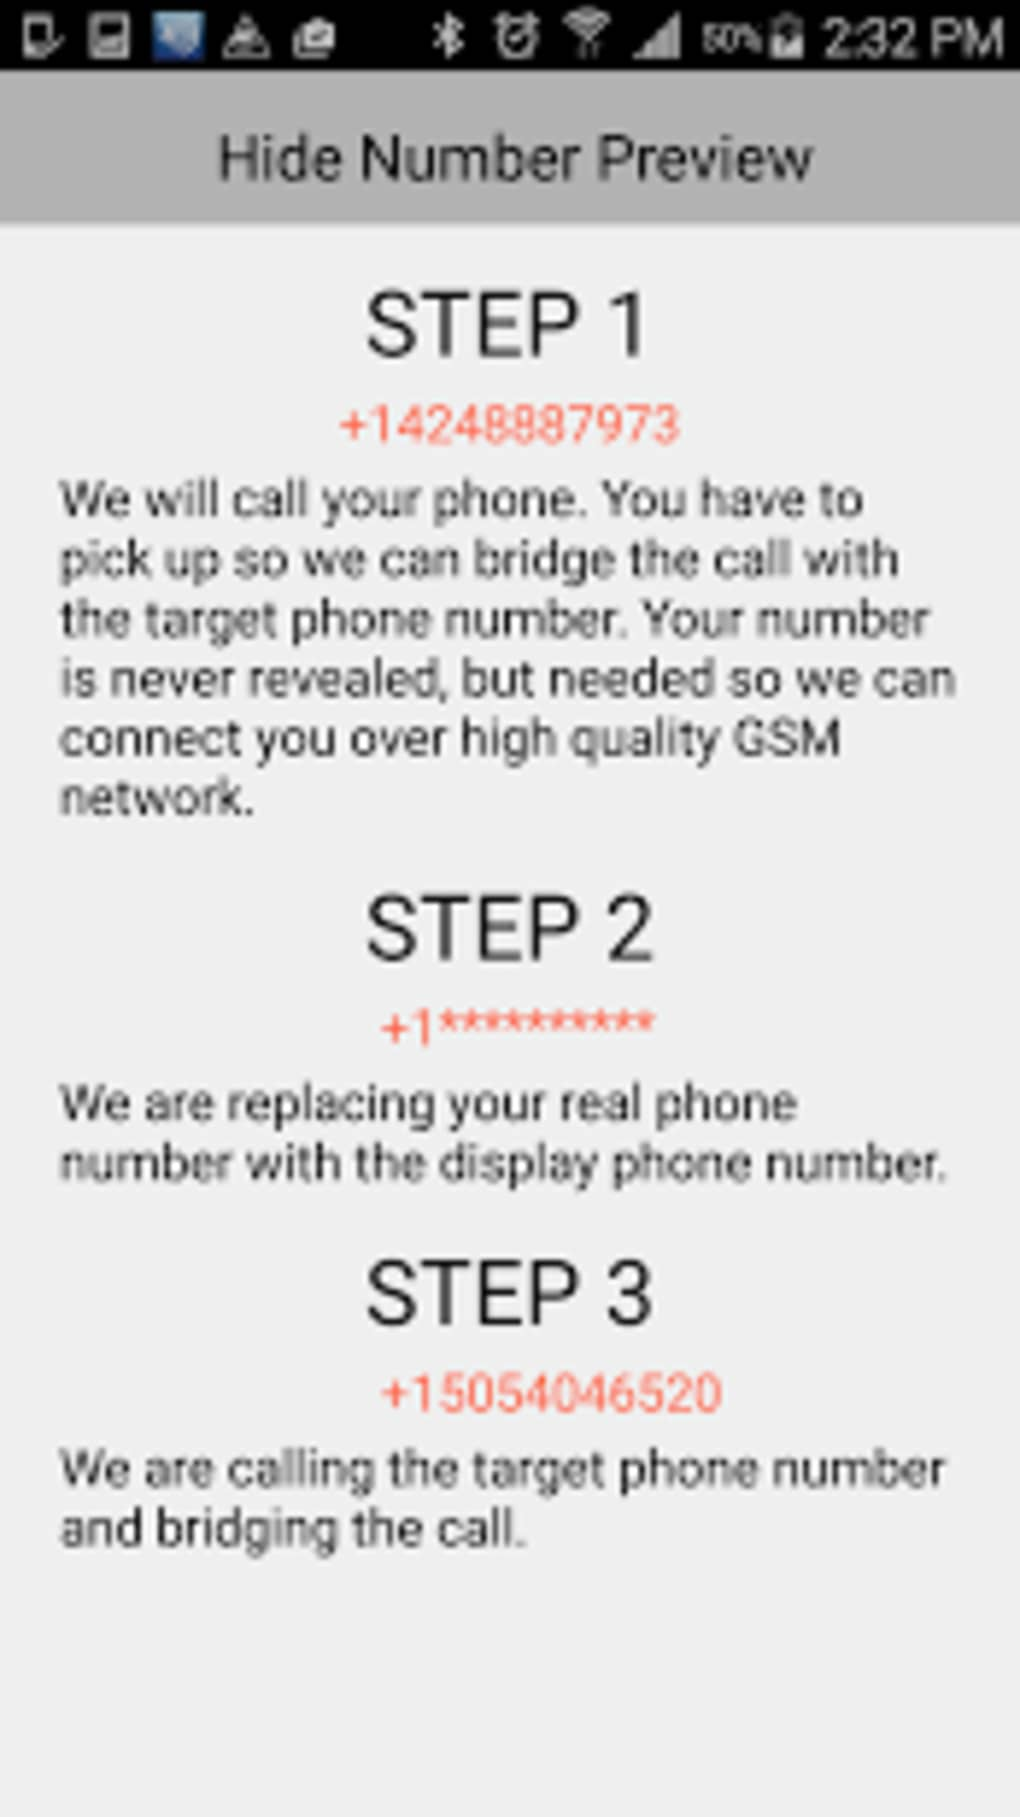 Spoof Call Fake Caller Id APK for Android - Download